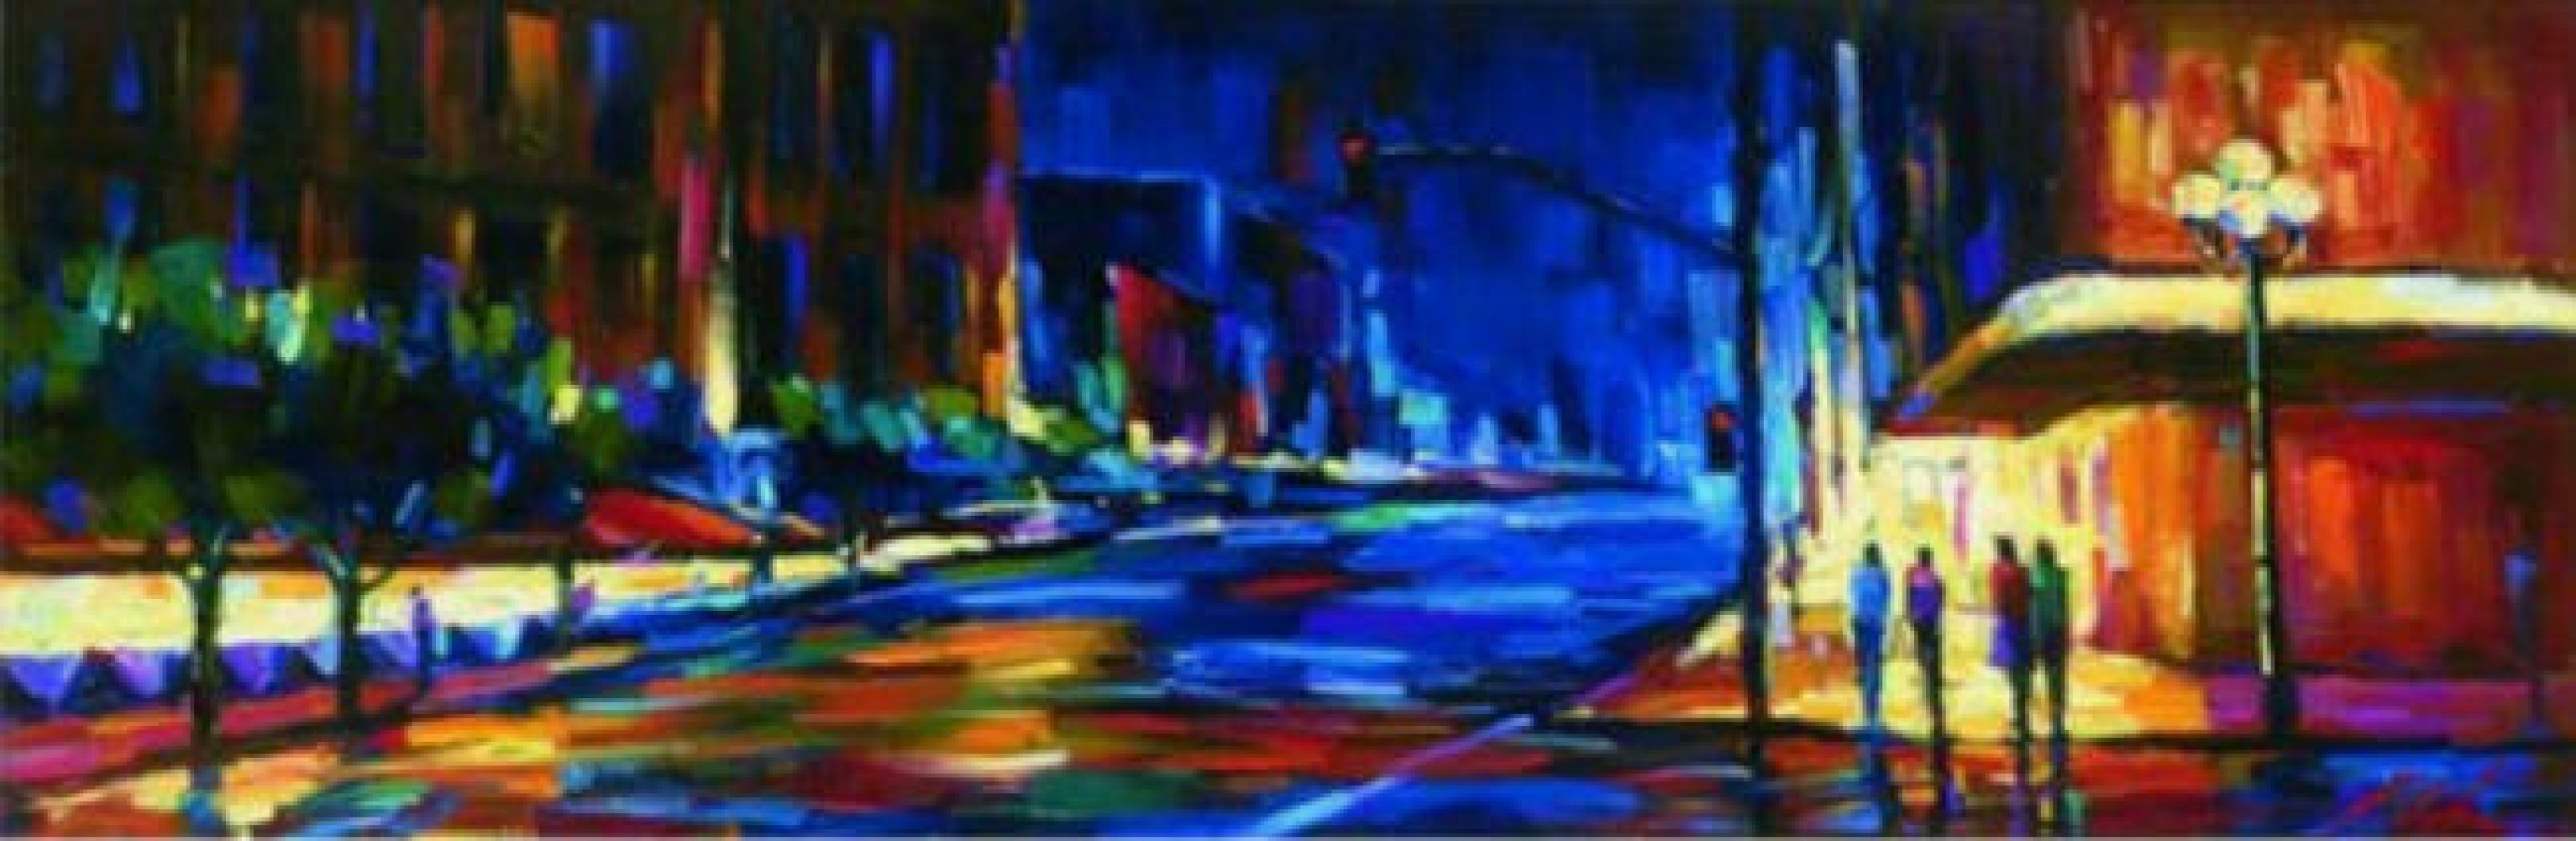 Uptown  2006 by Michael Flohr